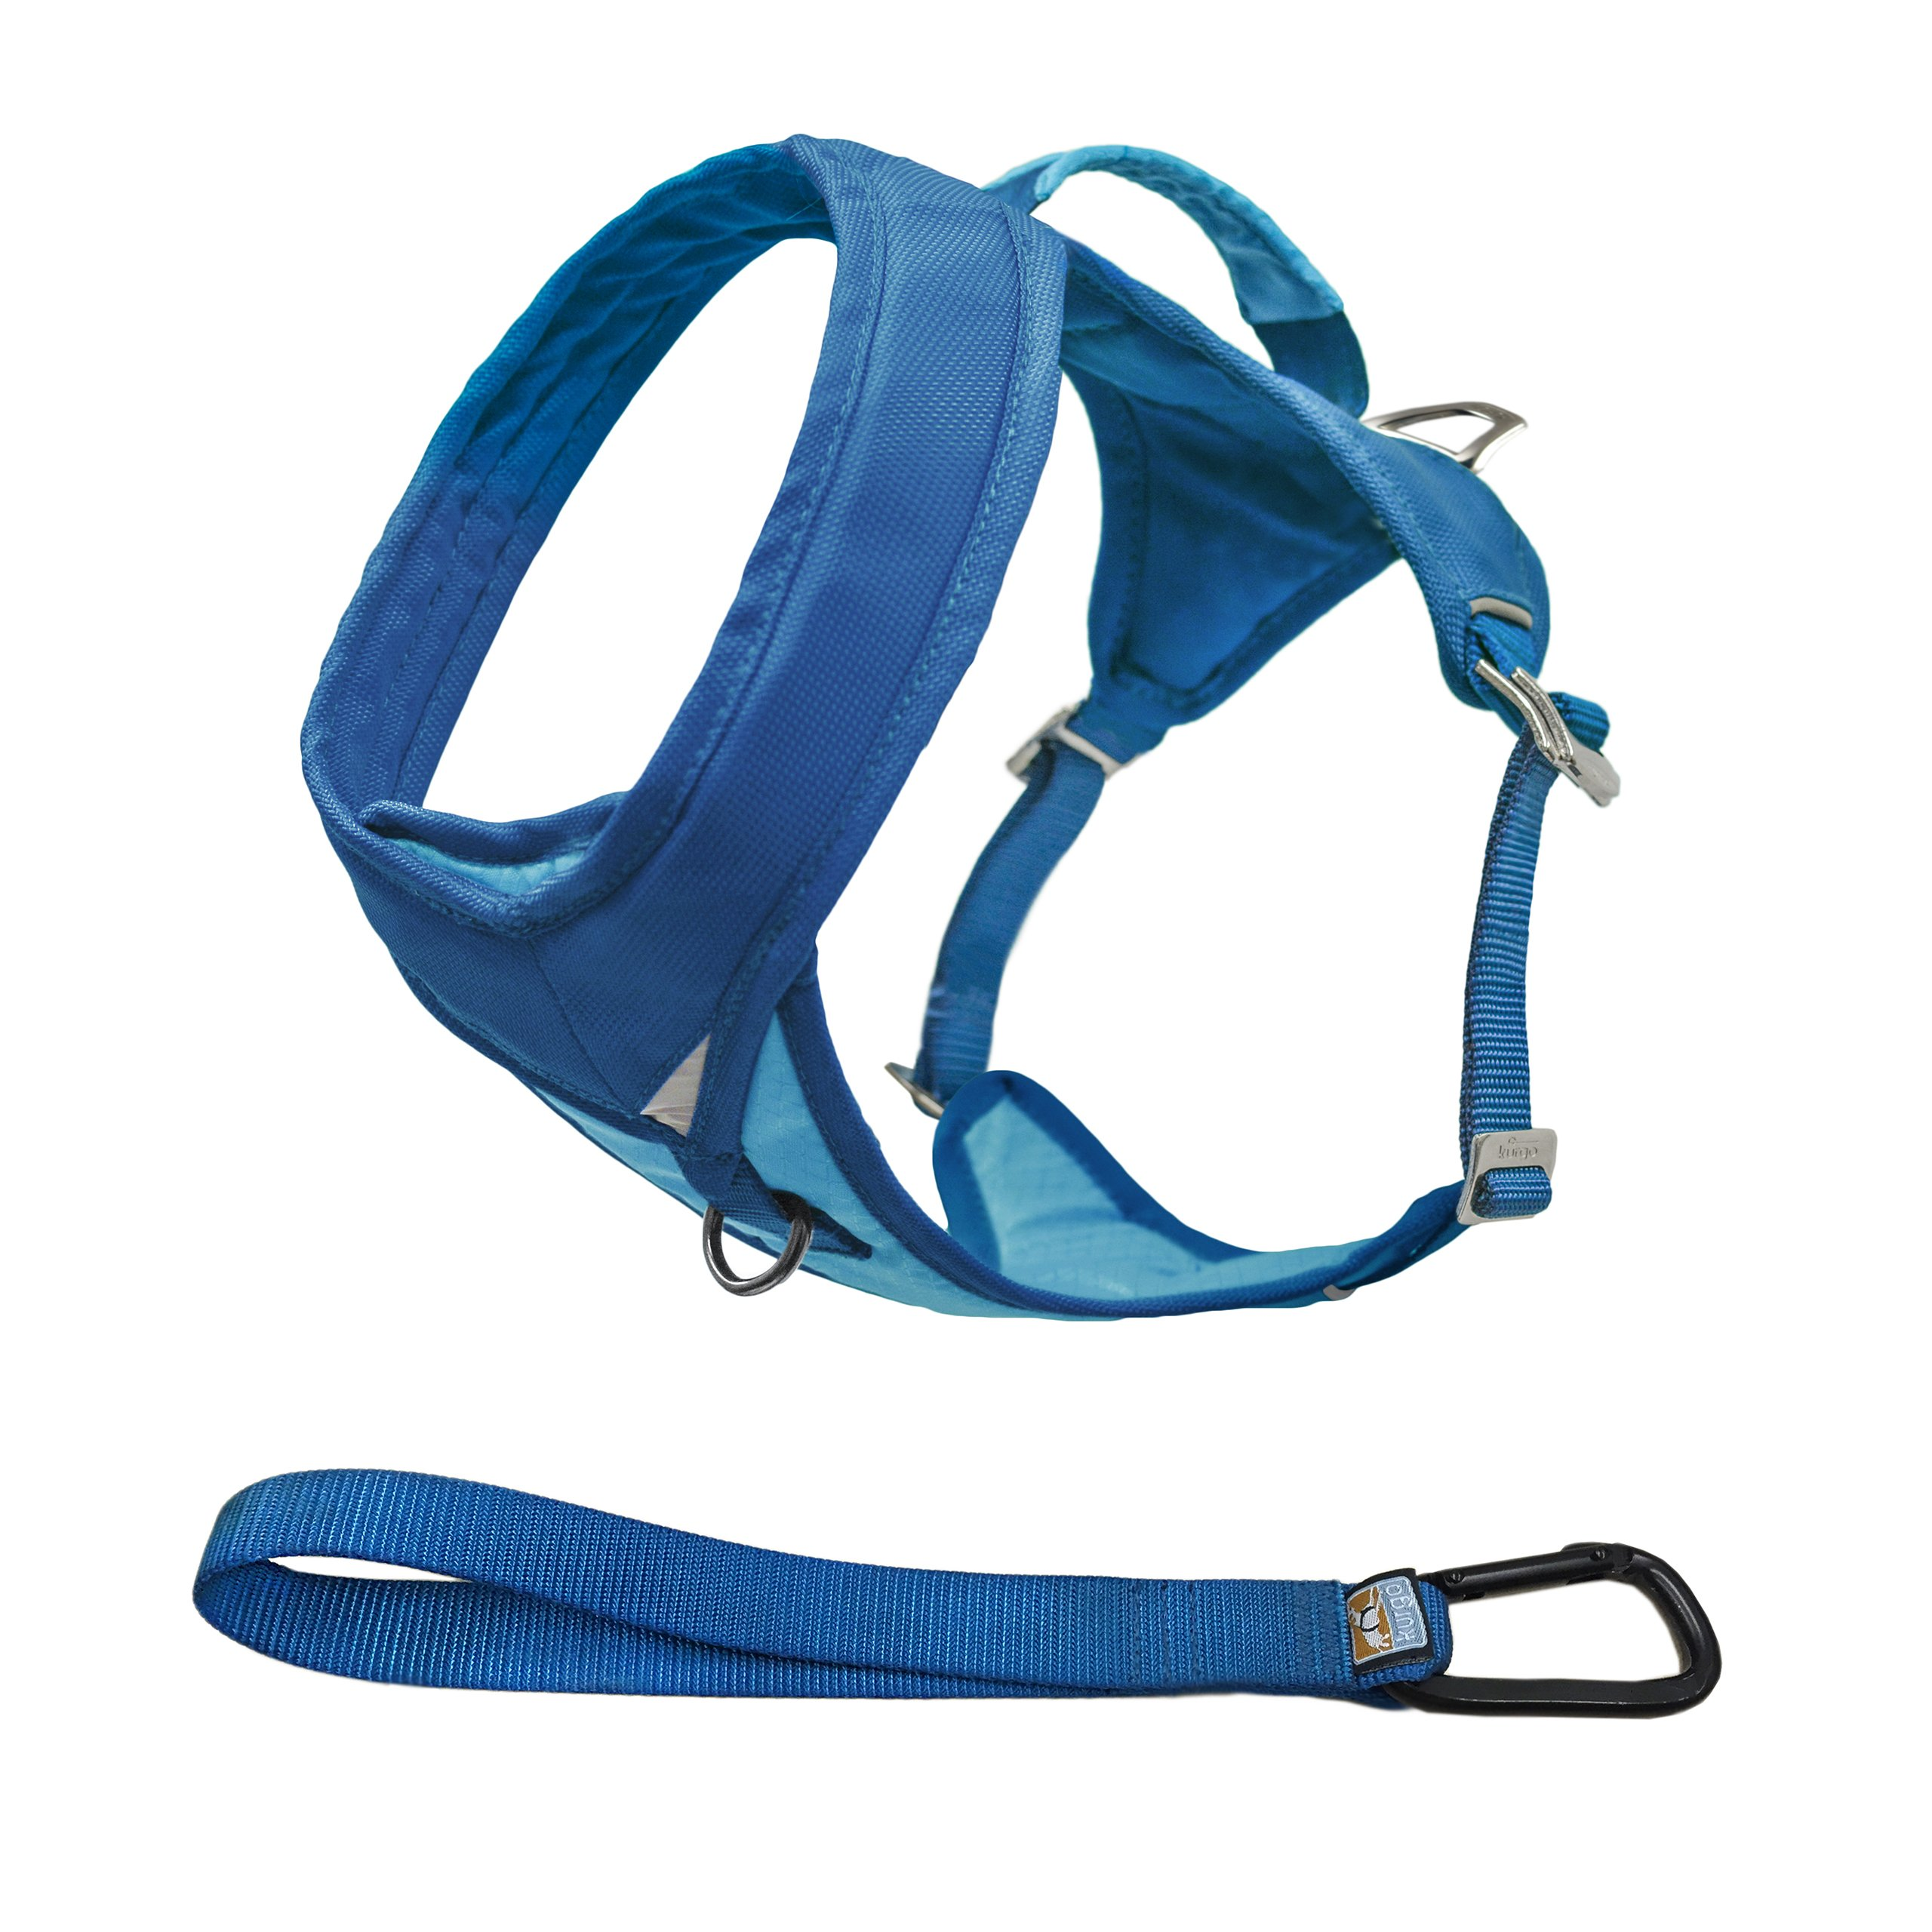 Kurgo Go-Tech (TM) Everyday Reflective Dog Harness for Running, Hiking & Walking Harness, Blue, Large